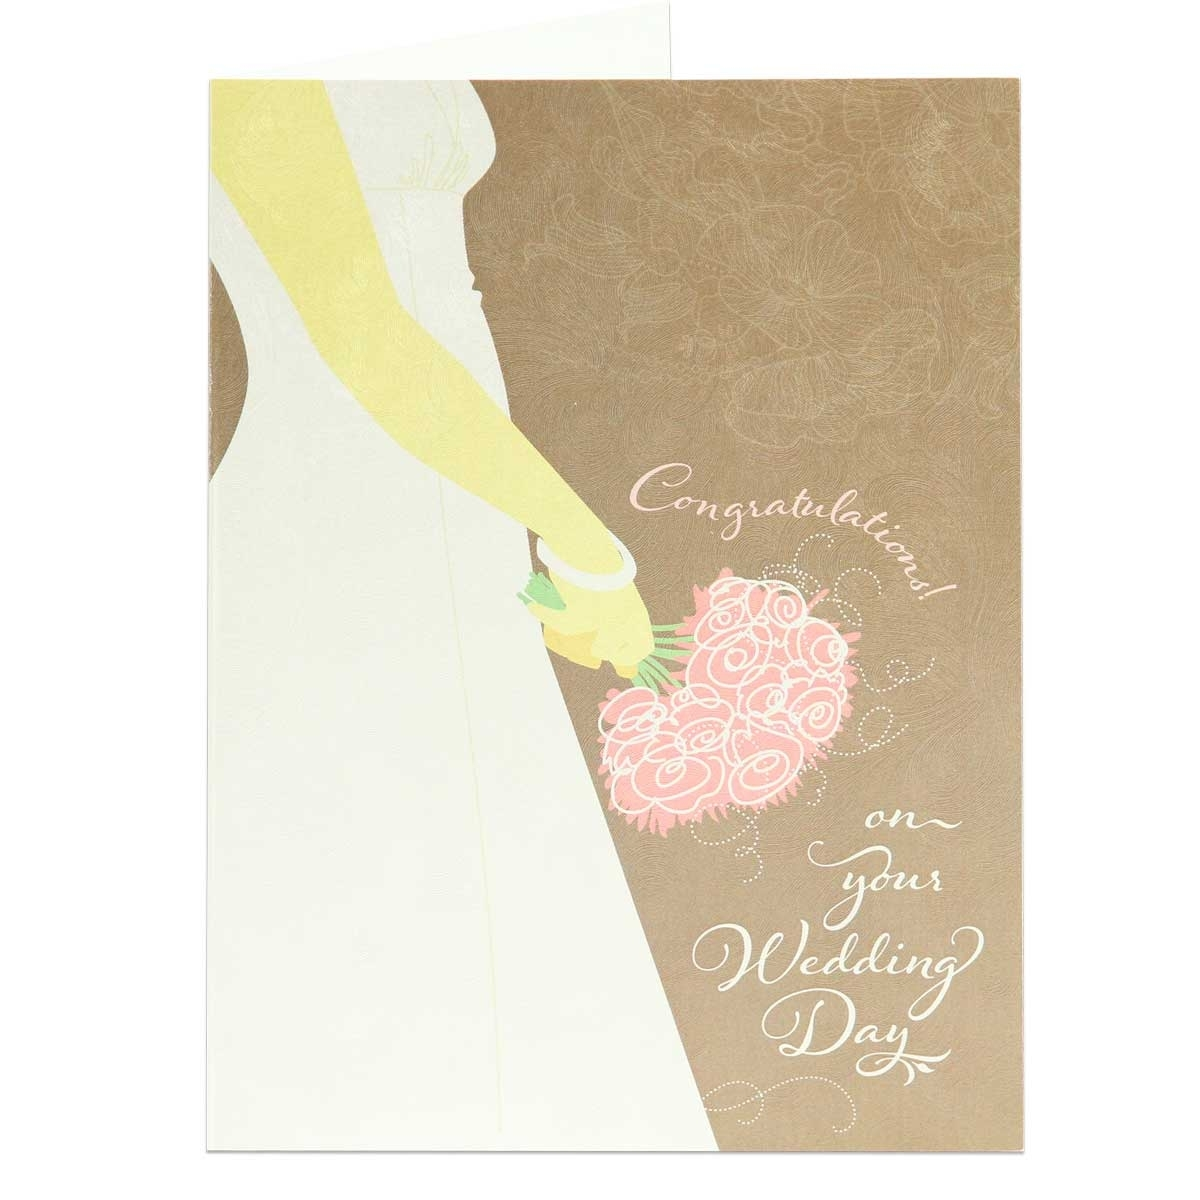 Congratulations On Your Wedding Day.Wedding Greeting Card Biblical Wedding Congratulations